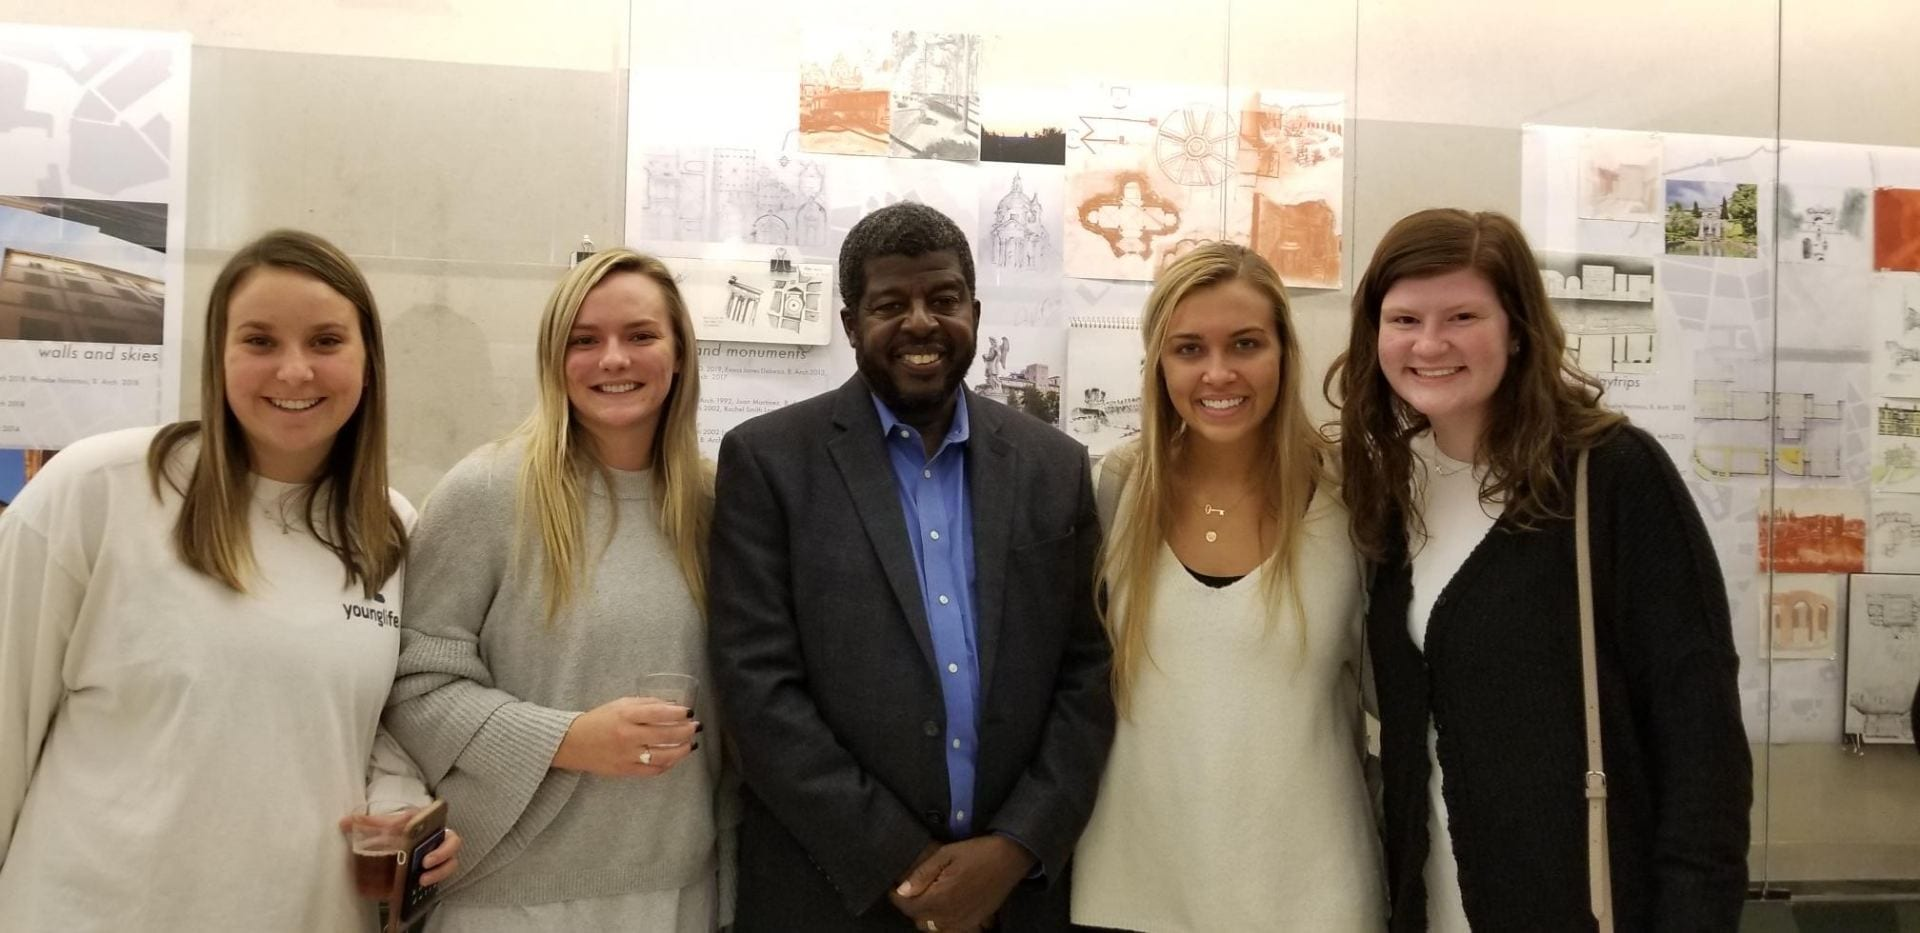 Some business foundation students also attended. Pictured, from left, are Kaitlin Ates, Baylee Knight, VDP Holmes, Jules Fletcher and Katelin Barger. 10/18/18